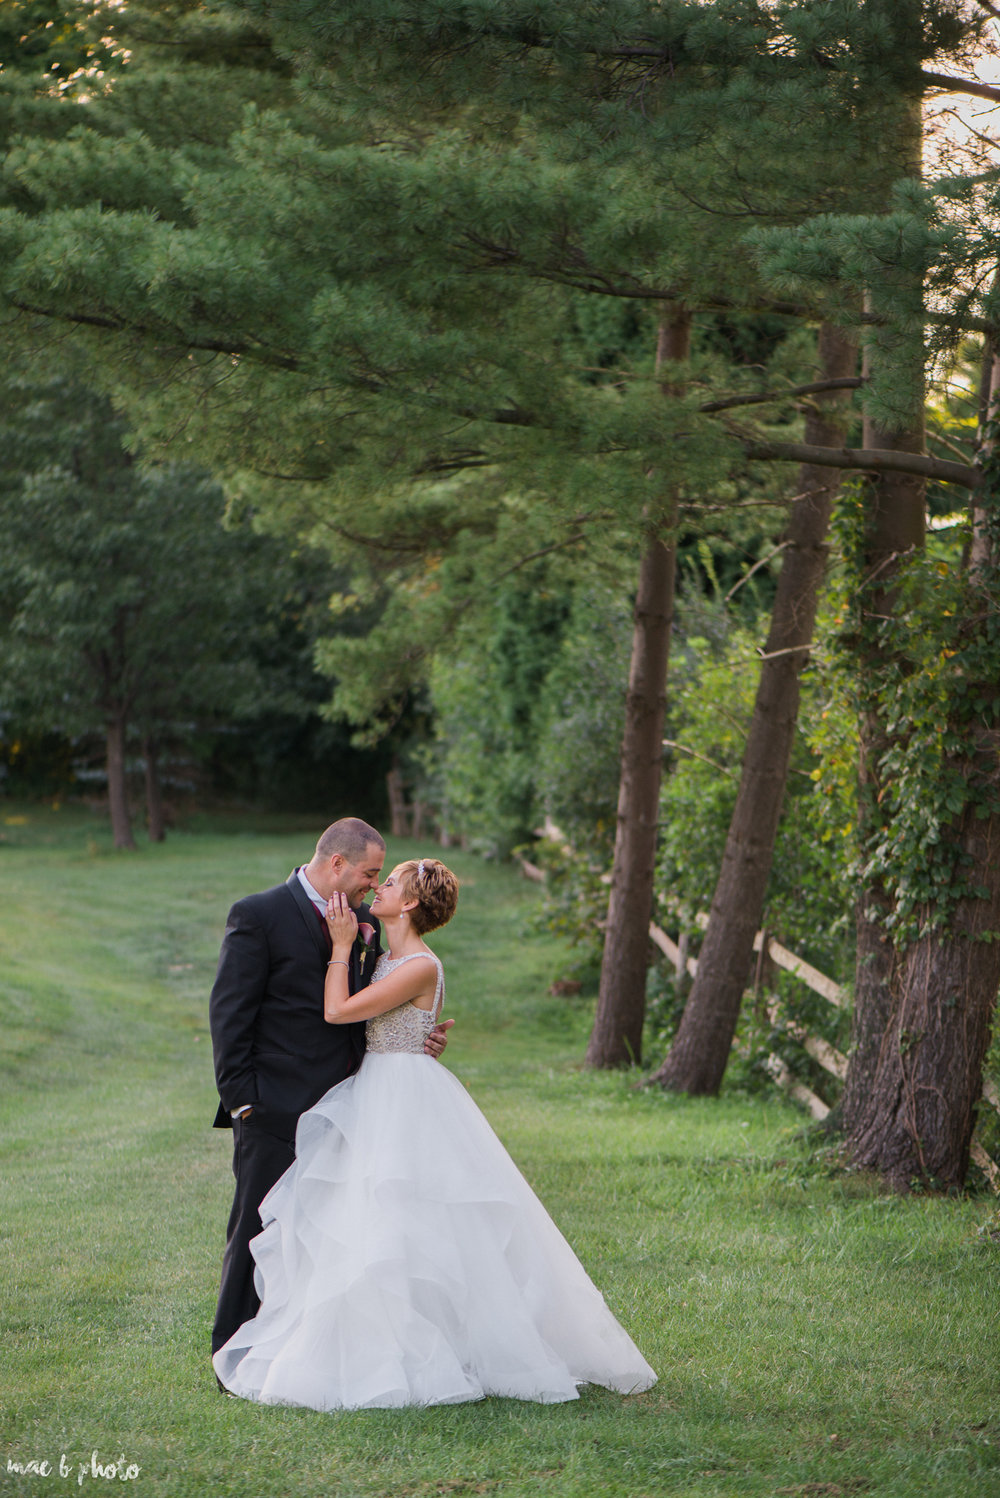 Mary Catherine & Chad's Elegant and Intimate Country Club Wedding at Squaw Creek in Youngstown Ohio by Mae B Photo-75.jpg